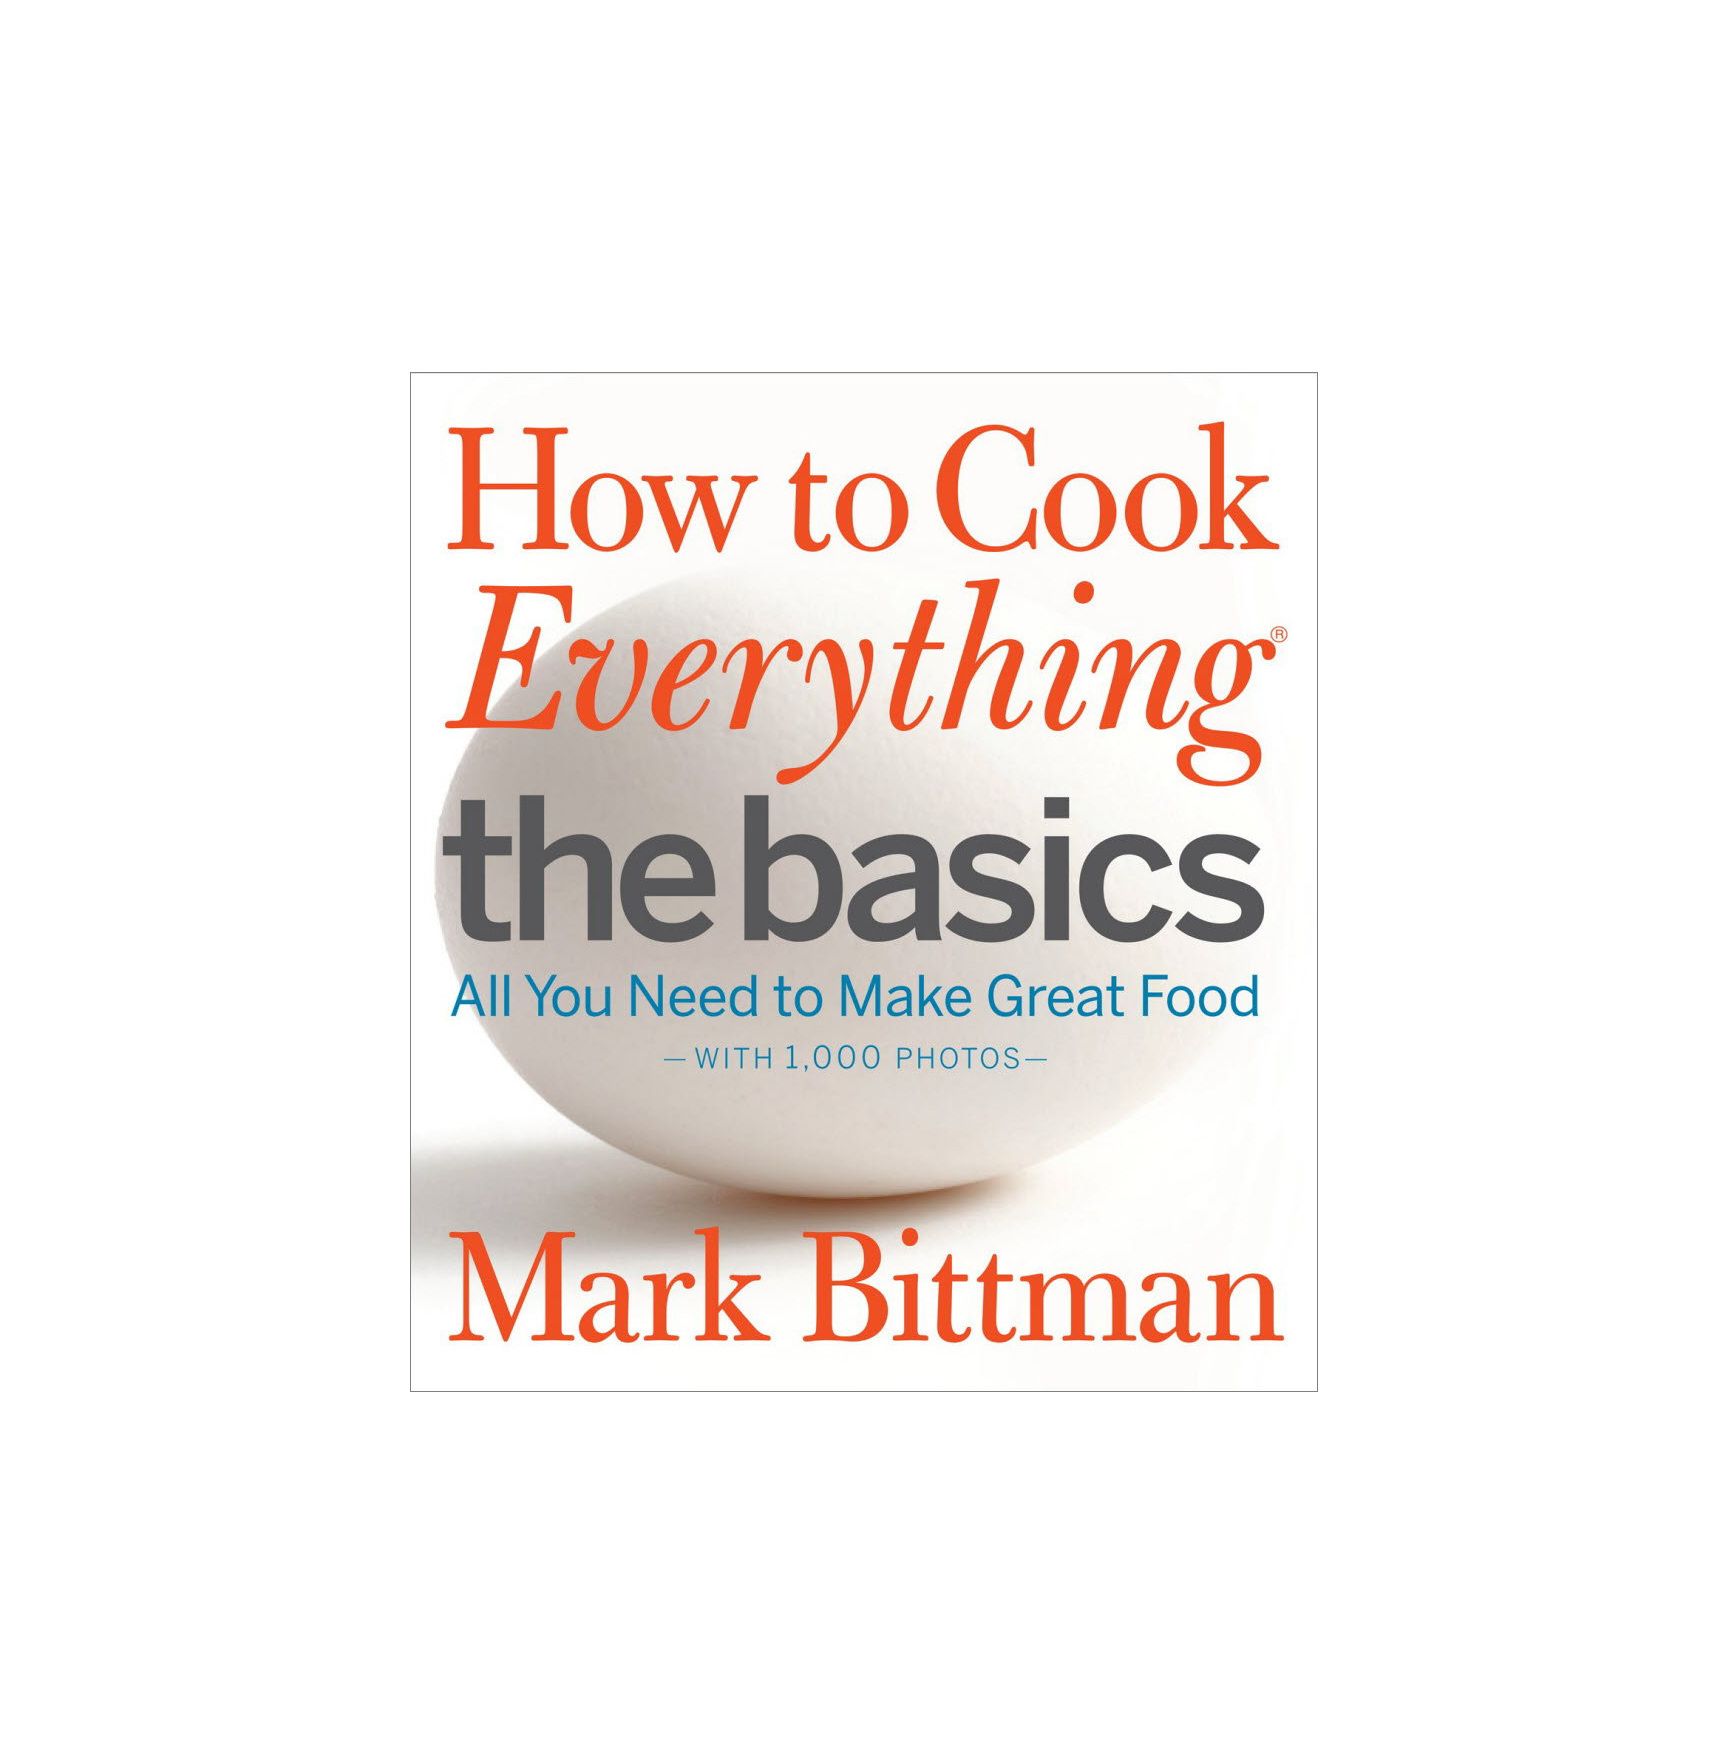 How to Cook Everything: The Basics, by Mark Bittman